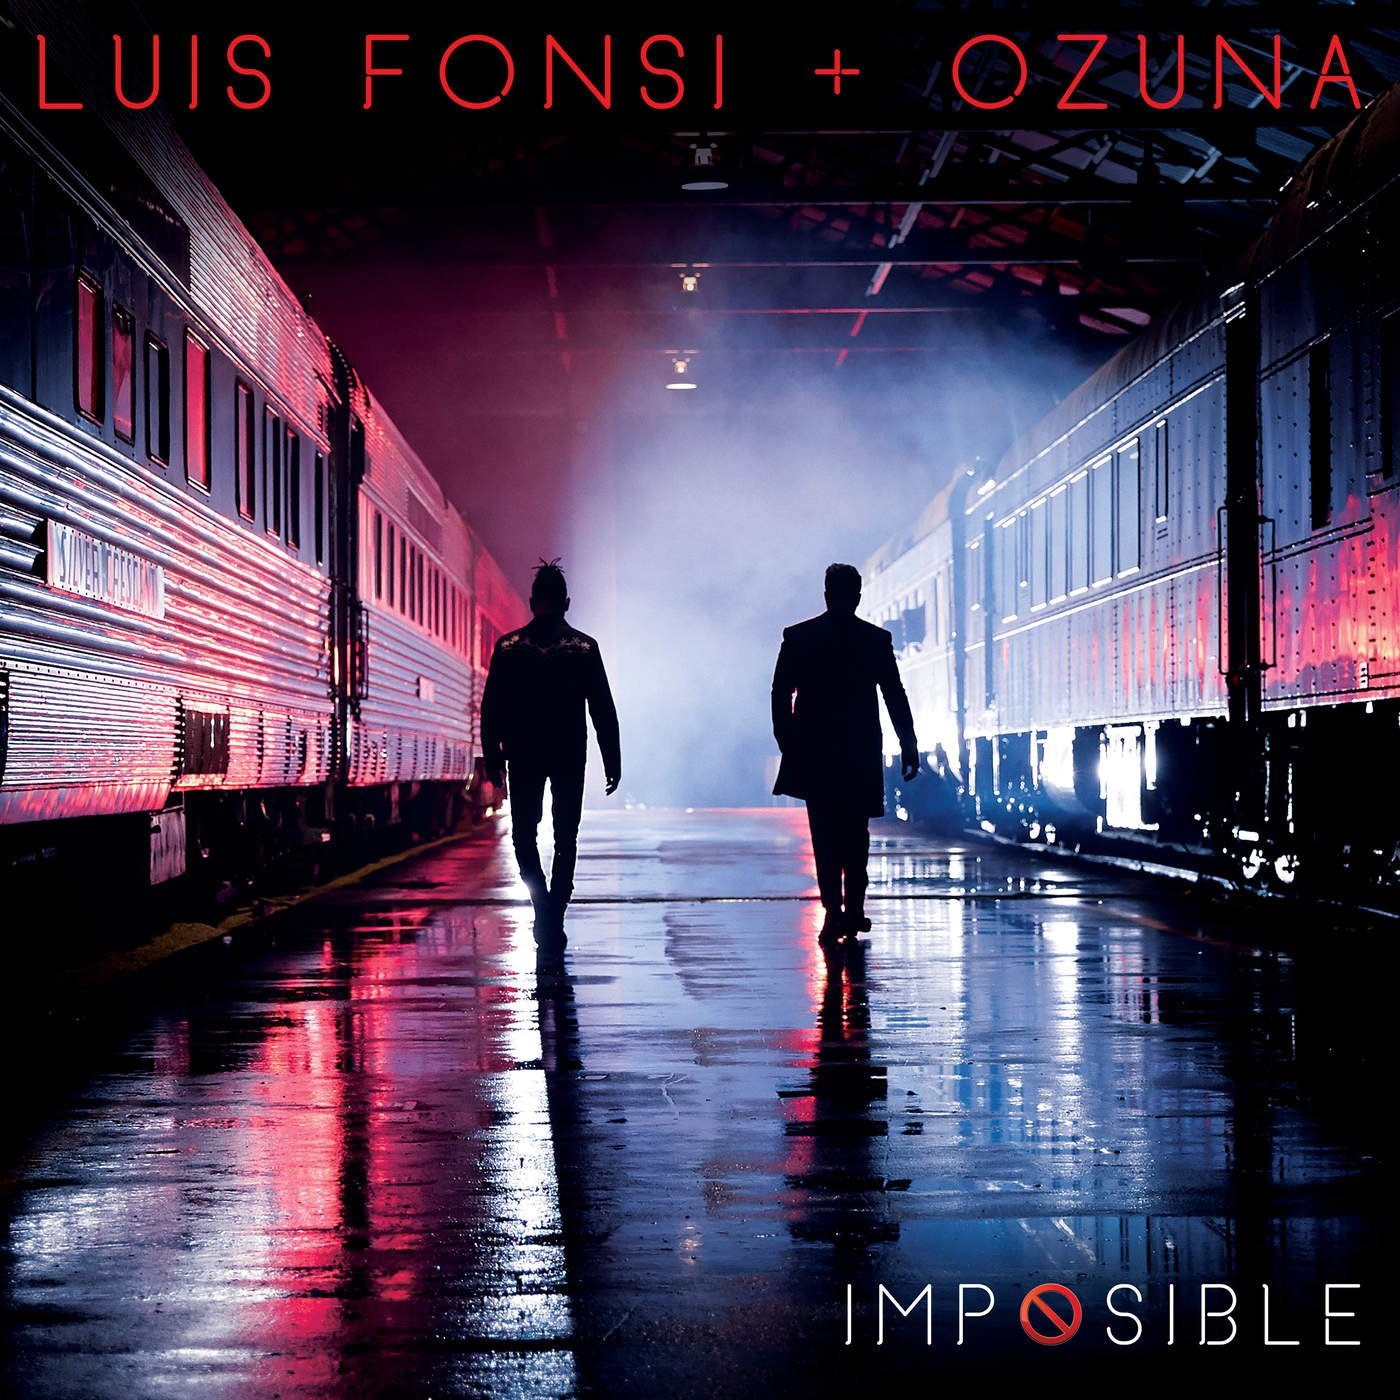 Luis Fonsi Ft. Ozuna - Imposible